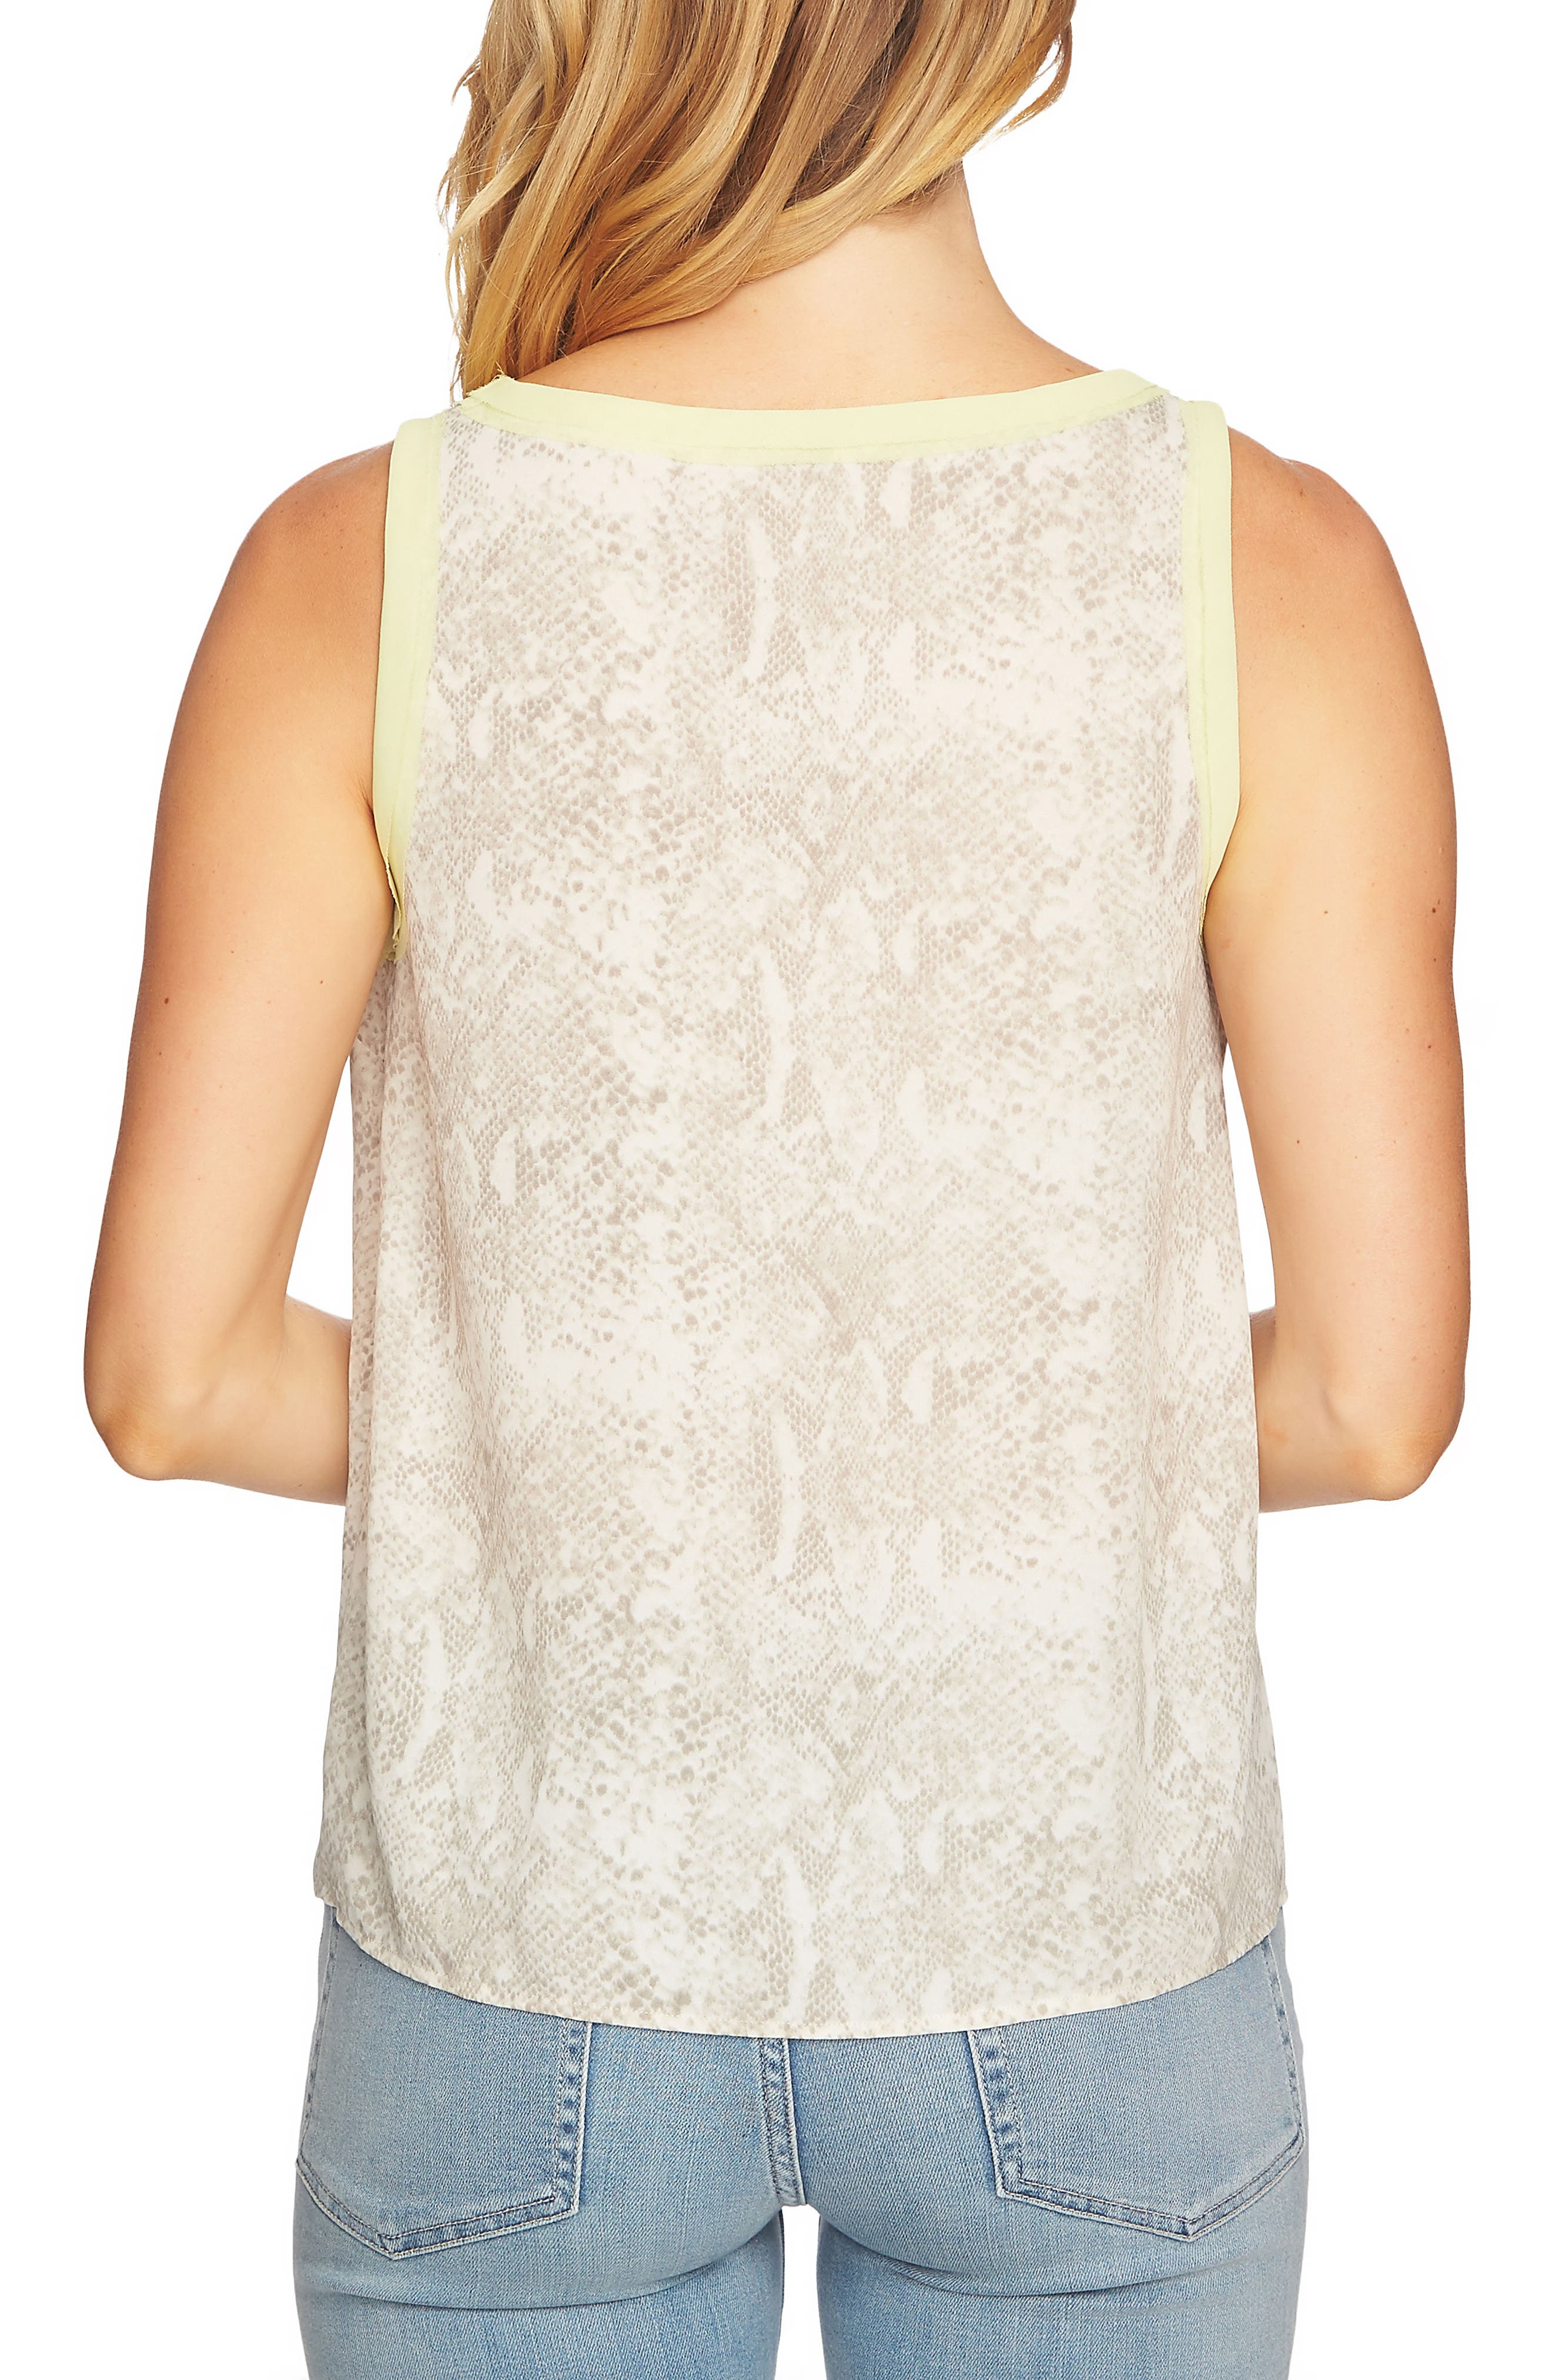 Chiffon Patterned Tank Top,                             Alternate thumbnail 2, color,